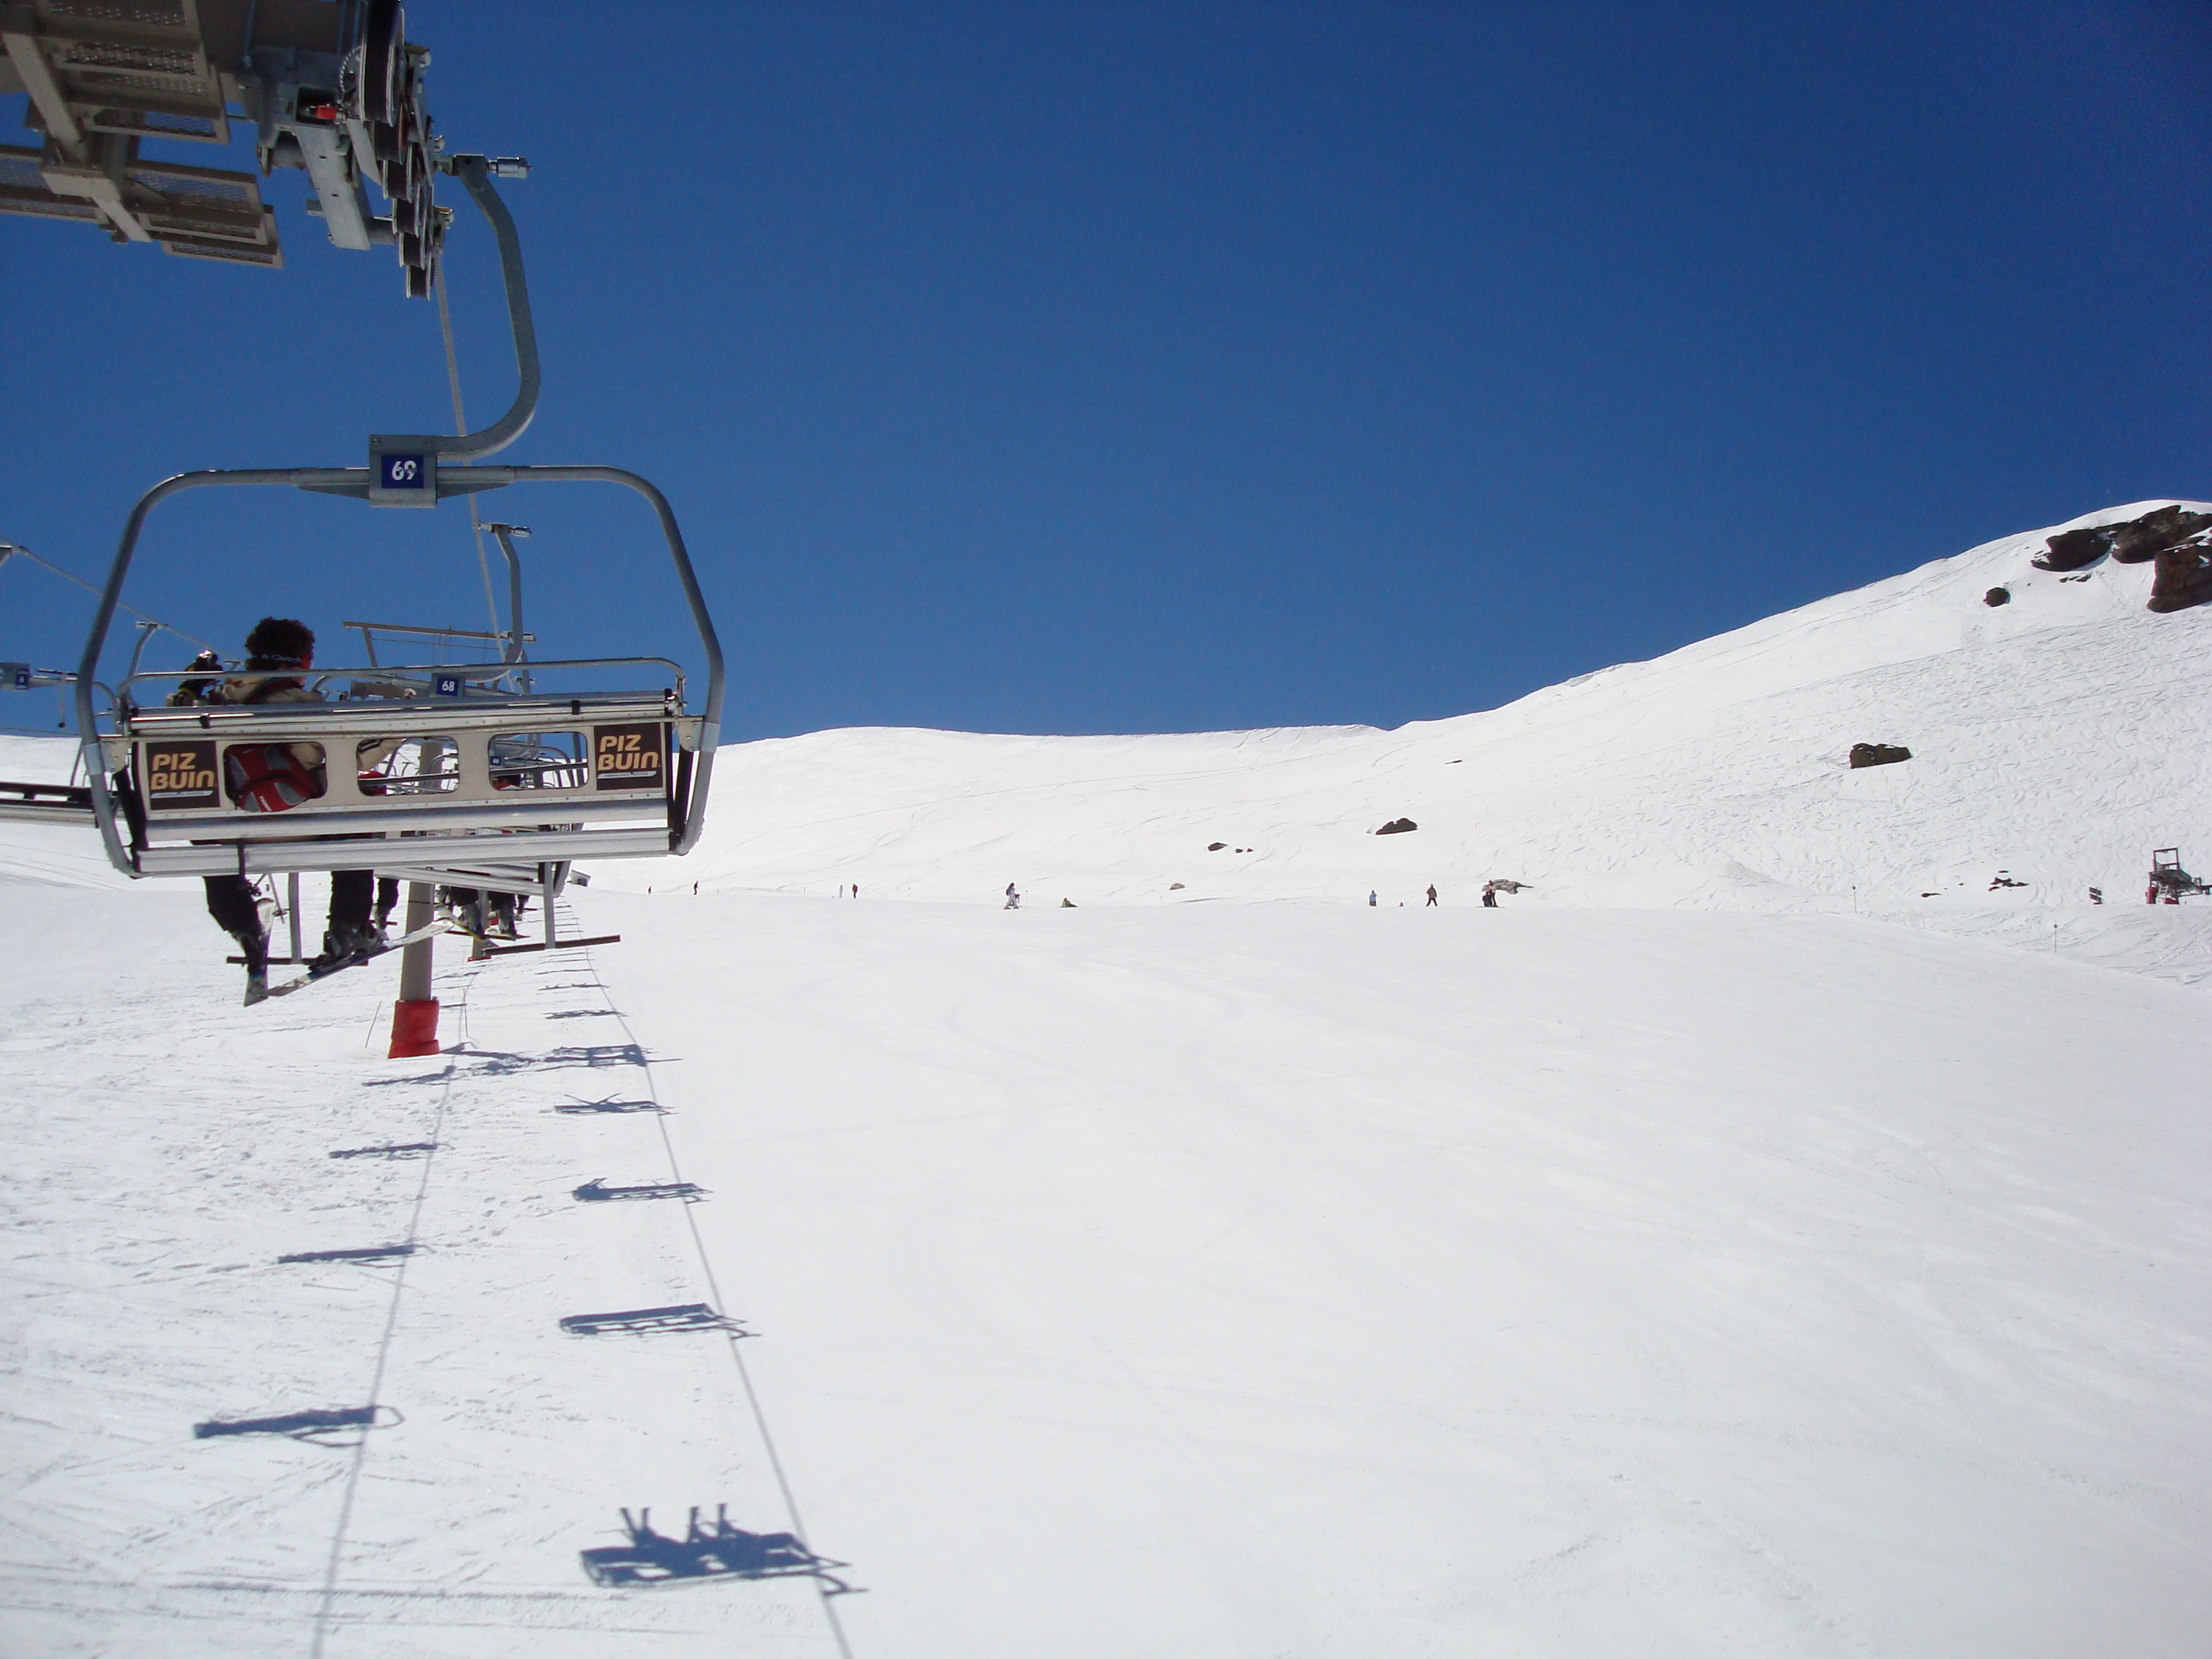 Sierra Nevada, Chairlift. andalucia